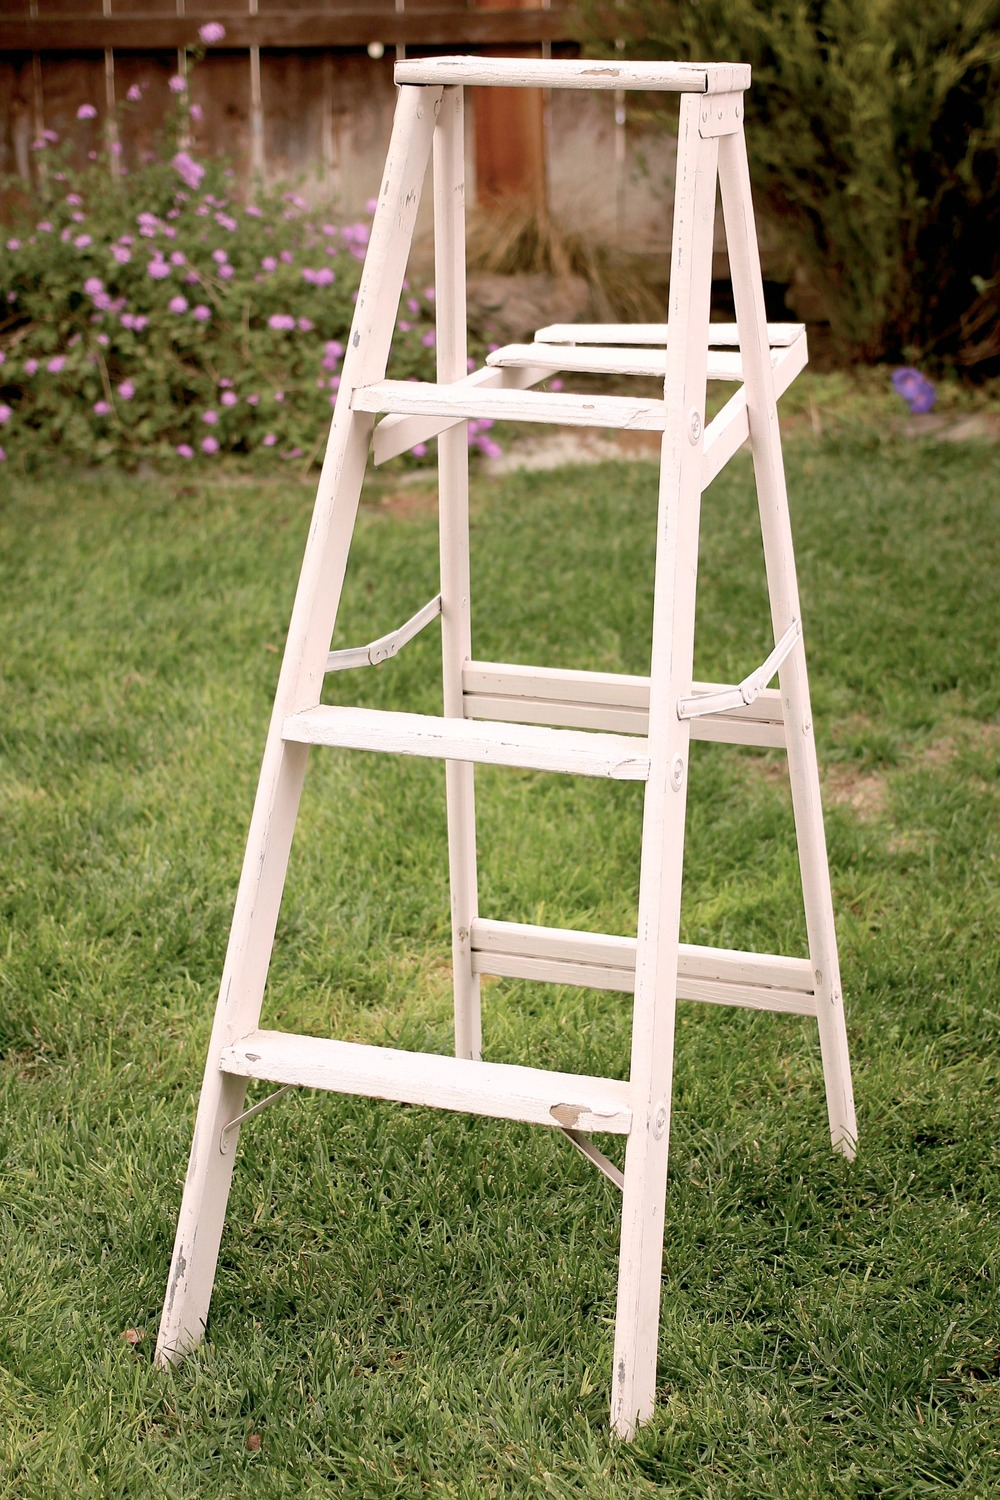 PAINTED A-FRAME LADDER - $15 MORE DETAILS & PICS...